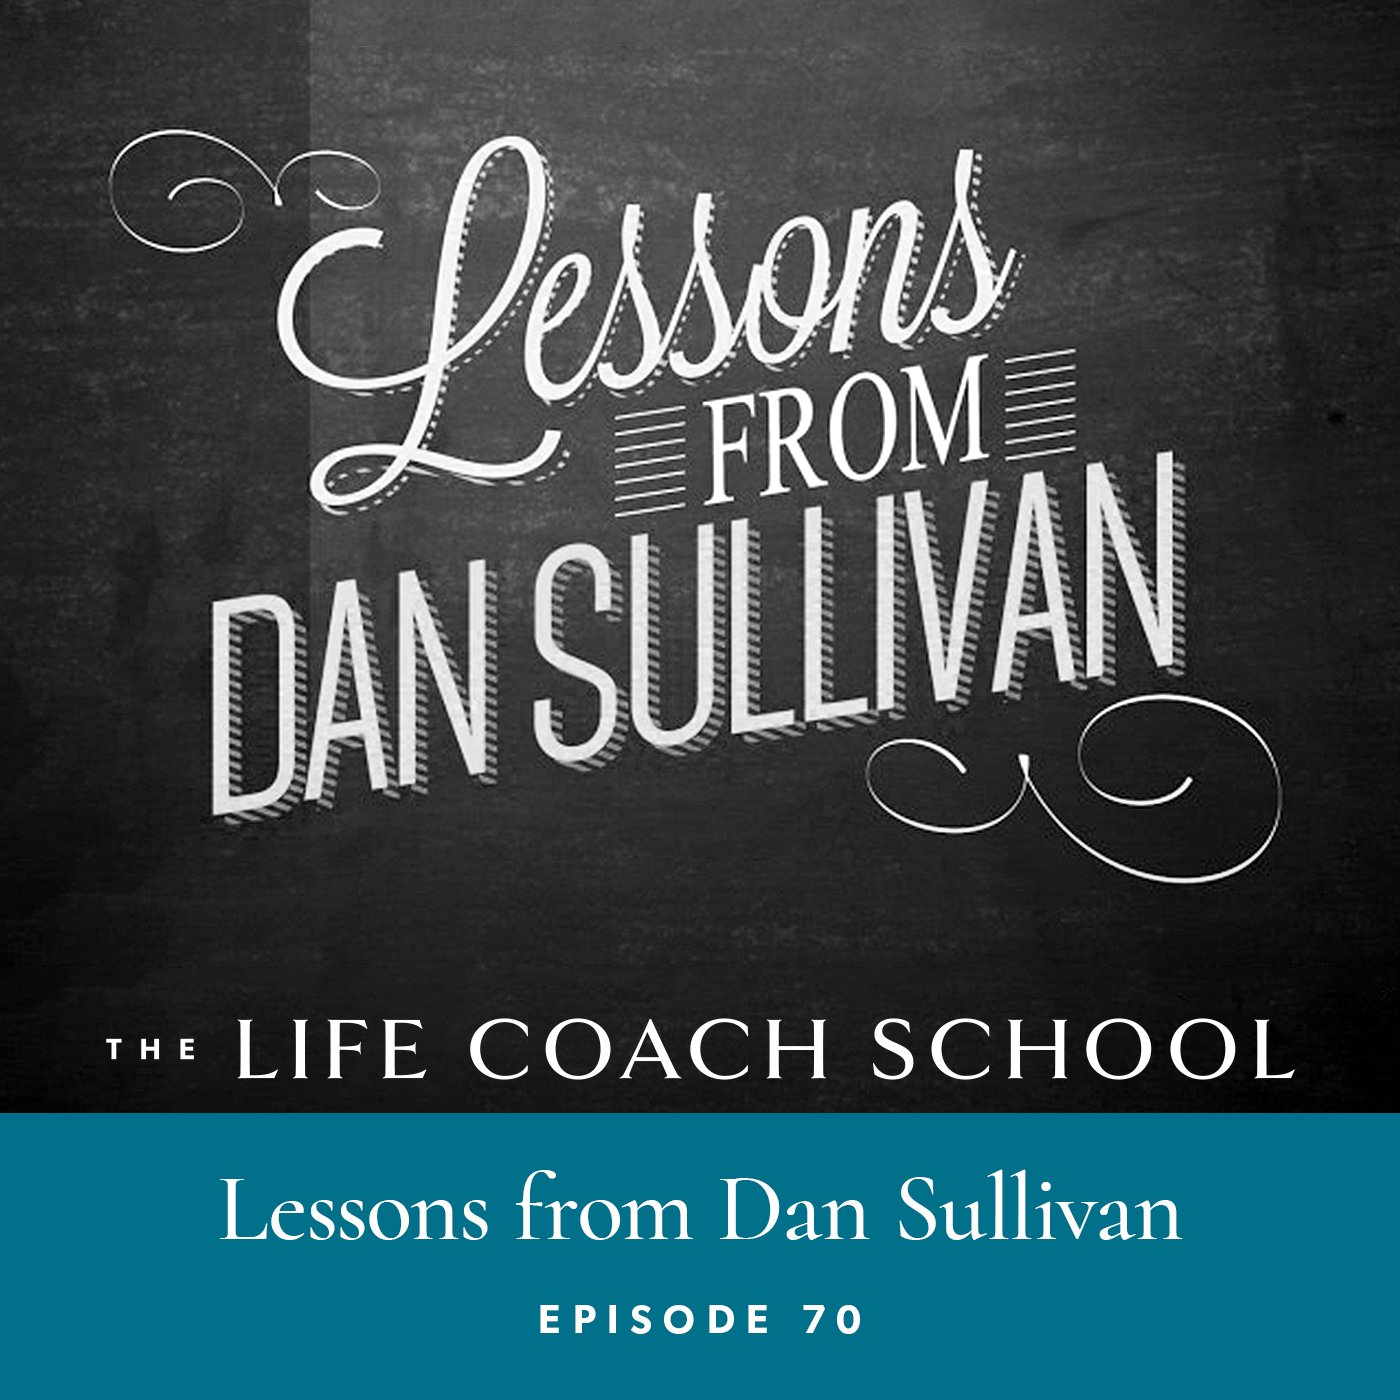 The Life Coach School Podcast | Episode 70 | Lessons Learned from Dan Sullivan